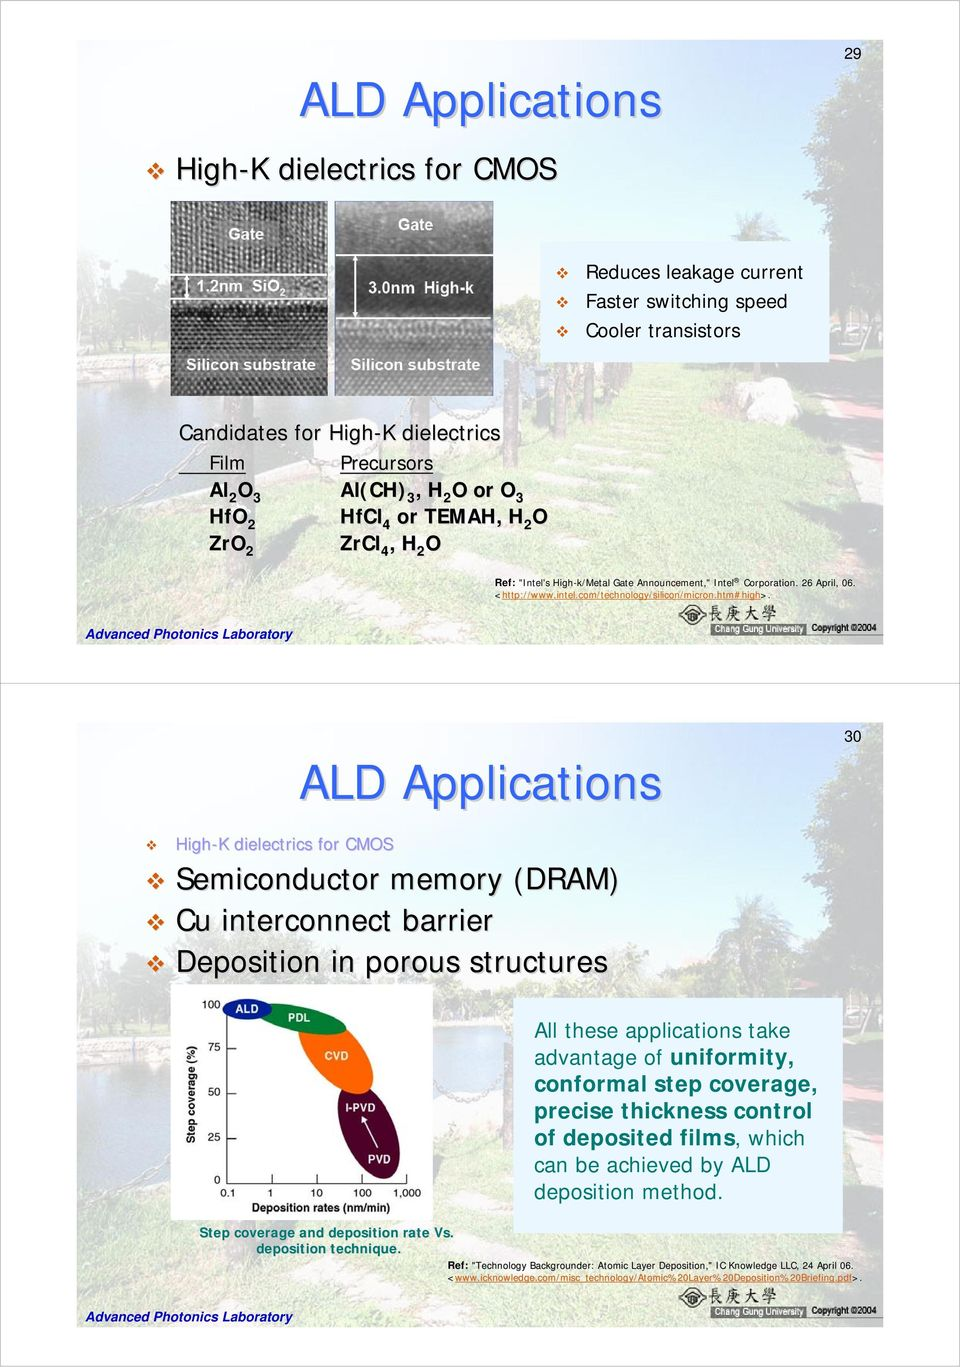 ALD Applications 30 High-K K dielectrics for CMOS Semiconductor memory (DRAM) Cu interconnect barrier Deposition in porous structures Step coverage and deposition rate Vs. deposition technique.